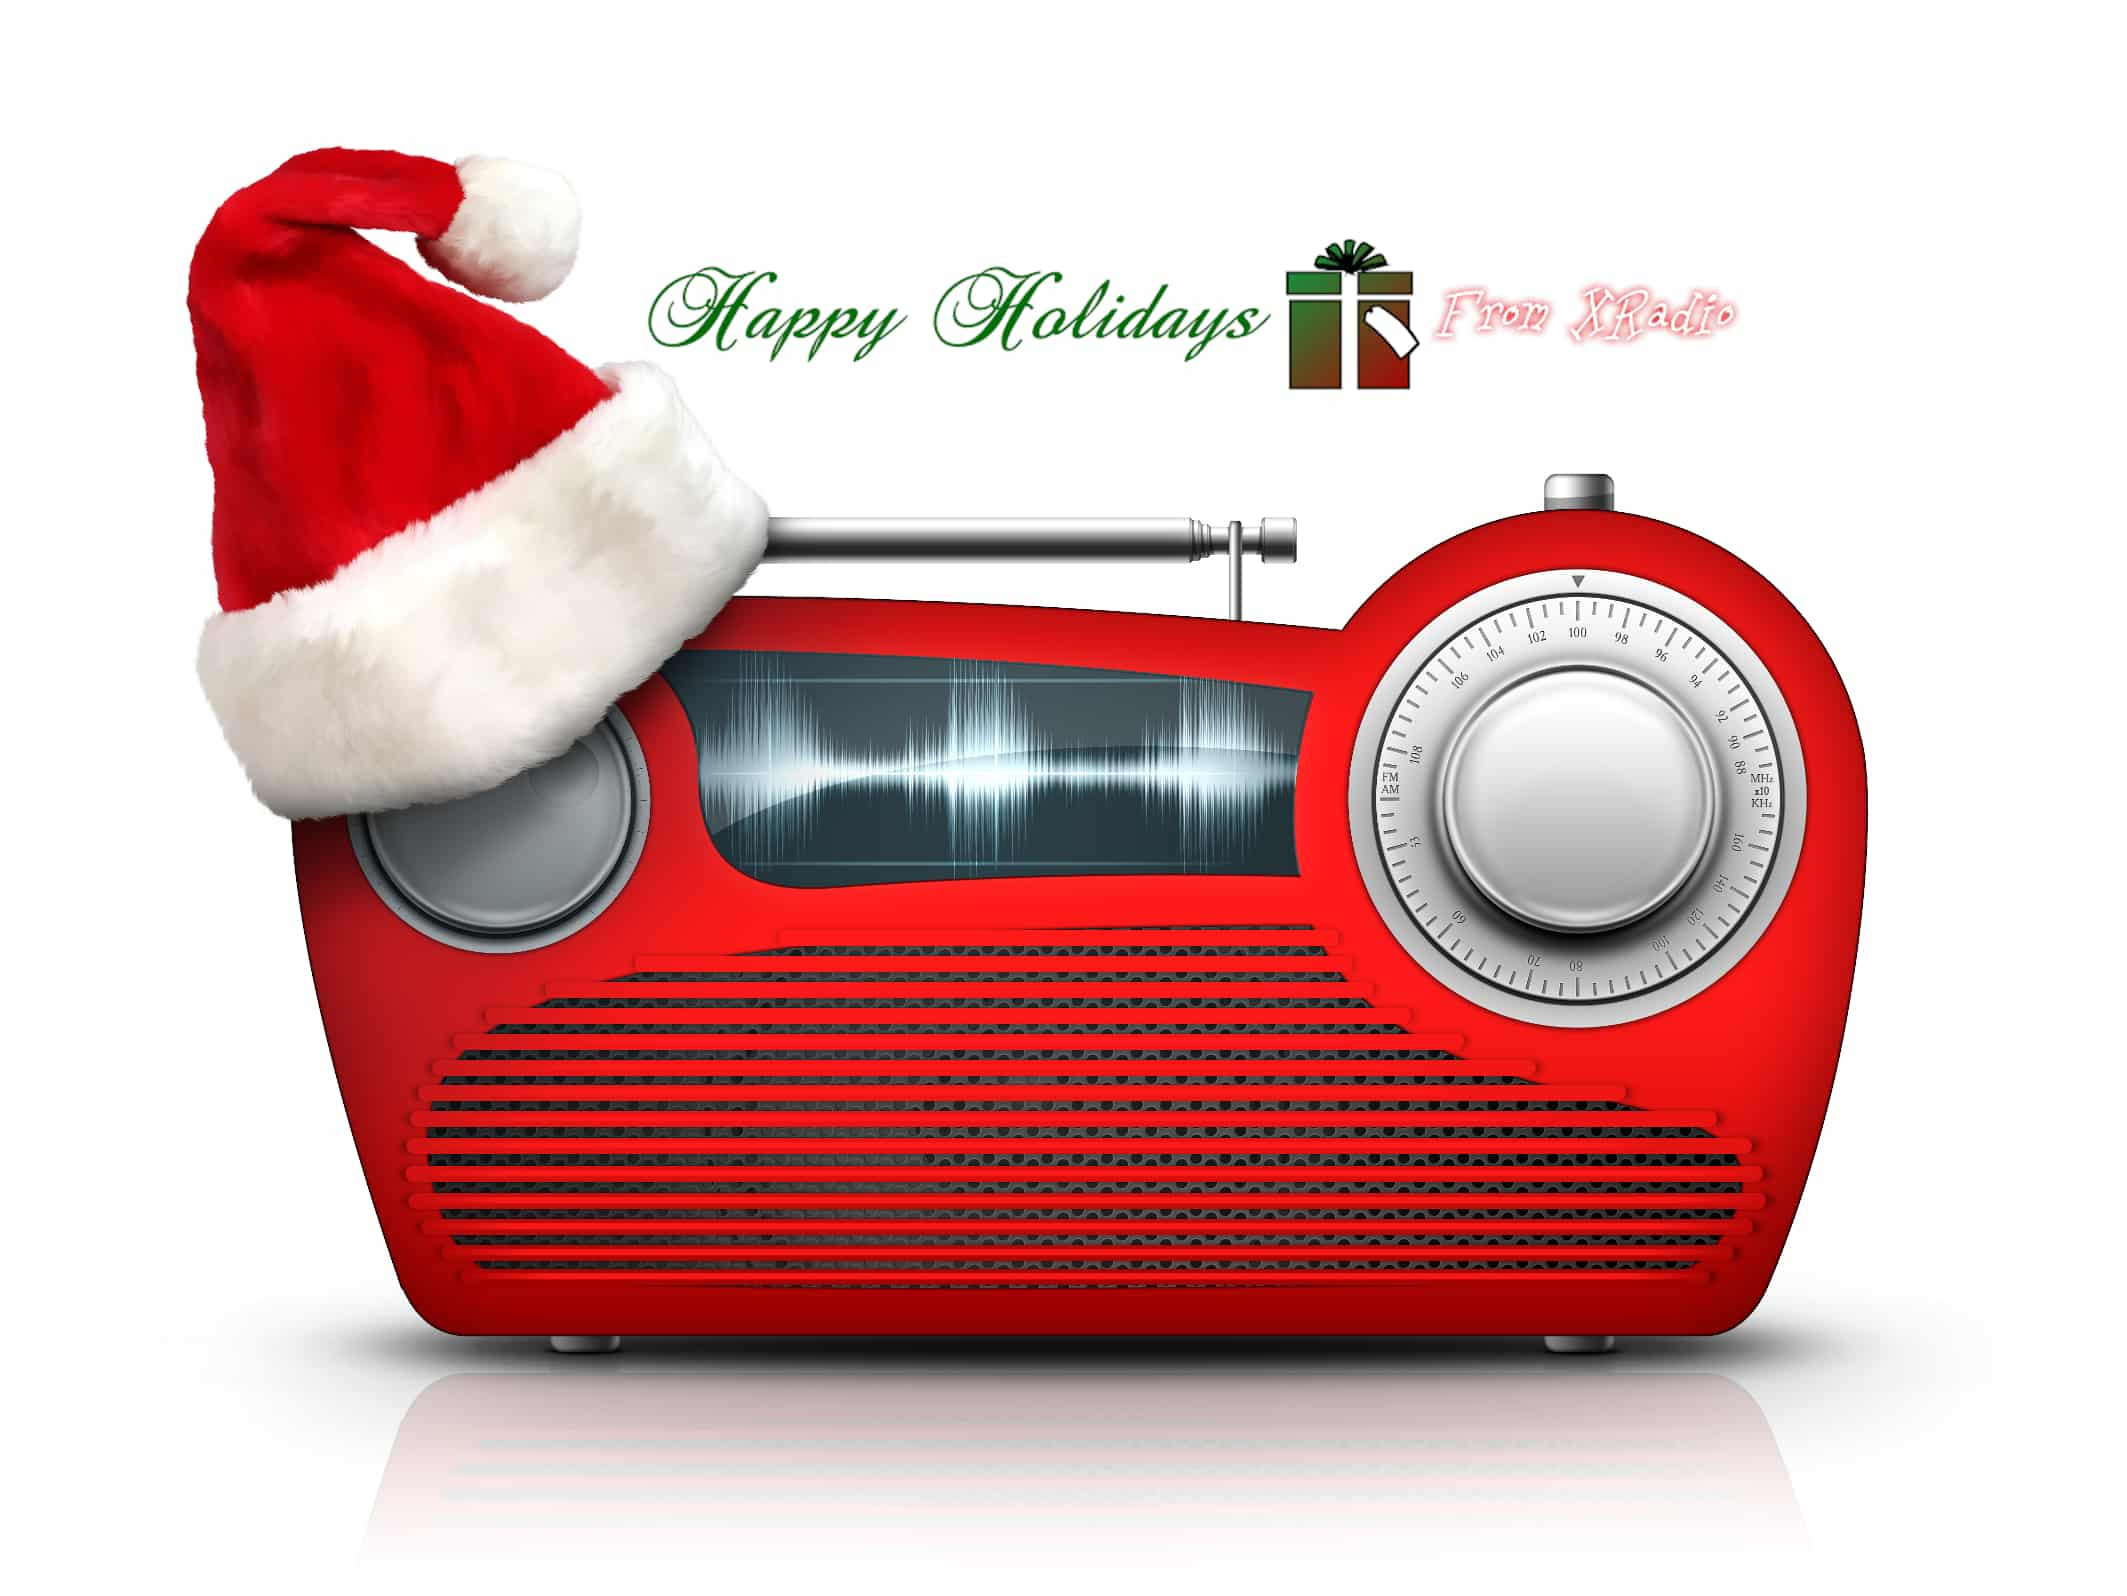 Happy Holidays from XRadio